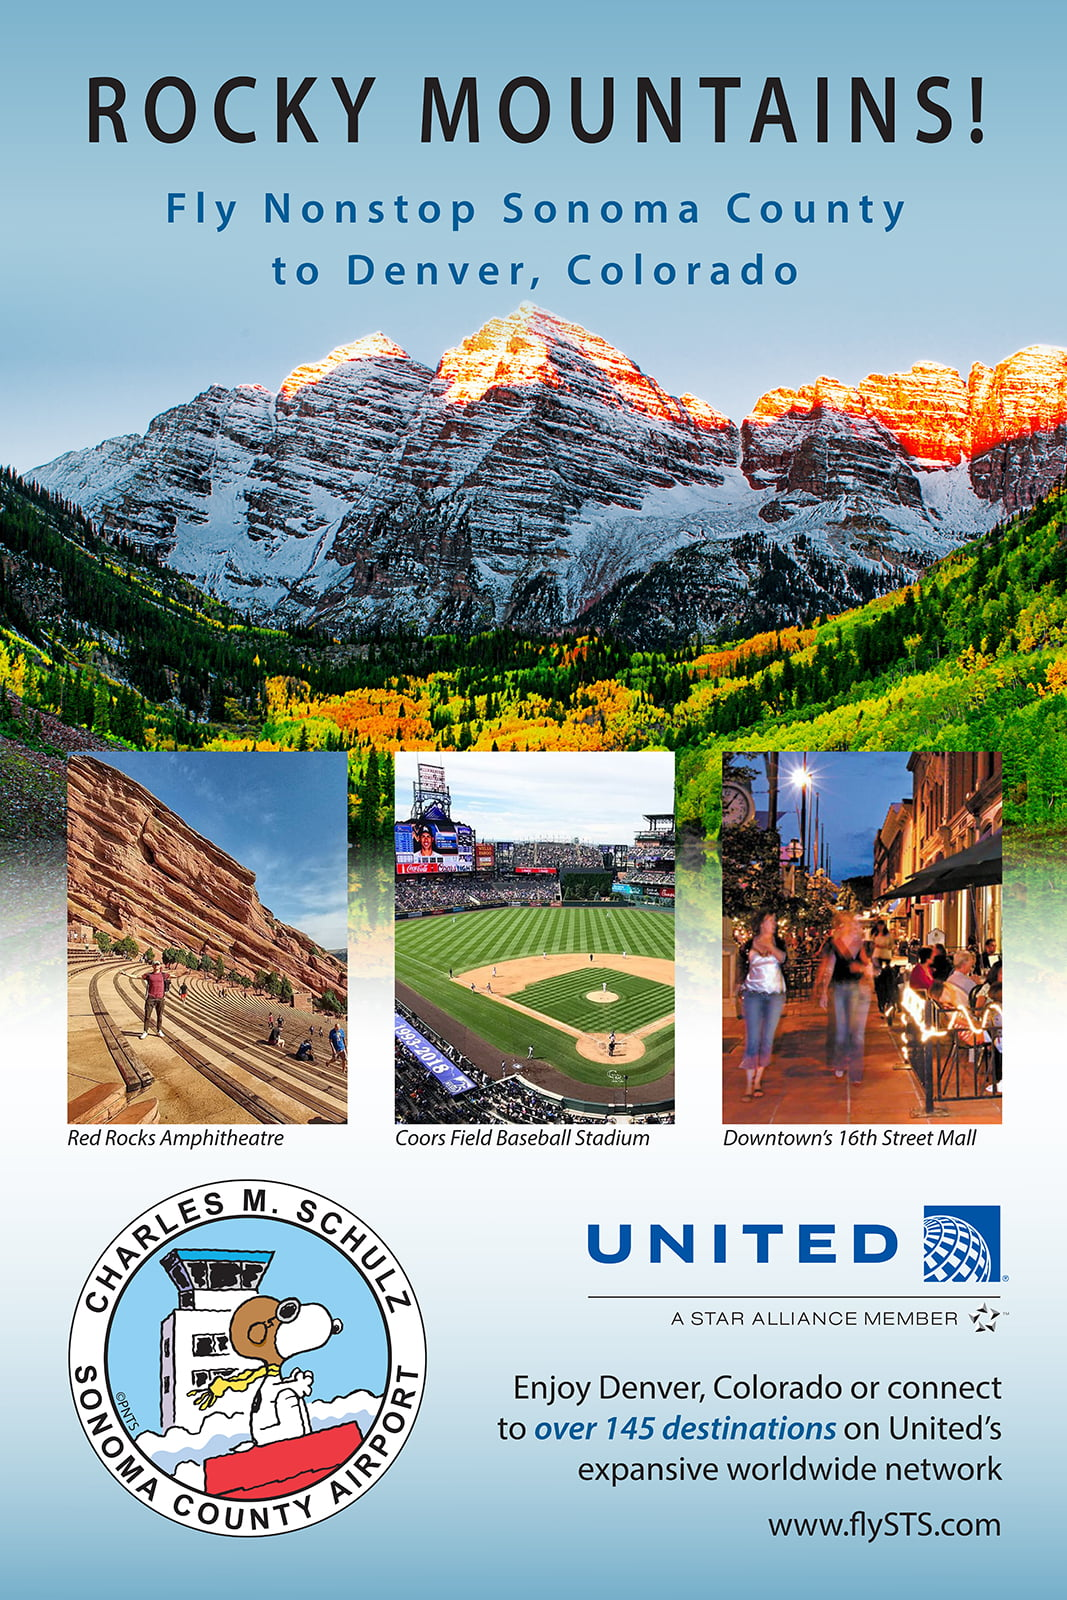 STS Celebrates Inaugural United Airlines Flights to and From Denver, Colorado on Friday, March 8